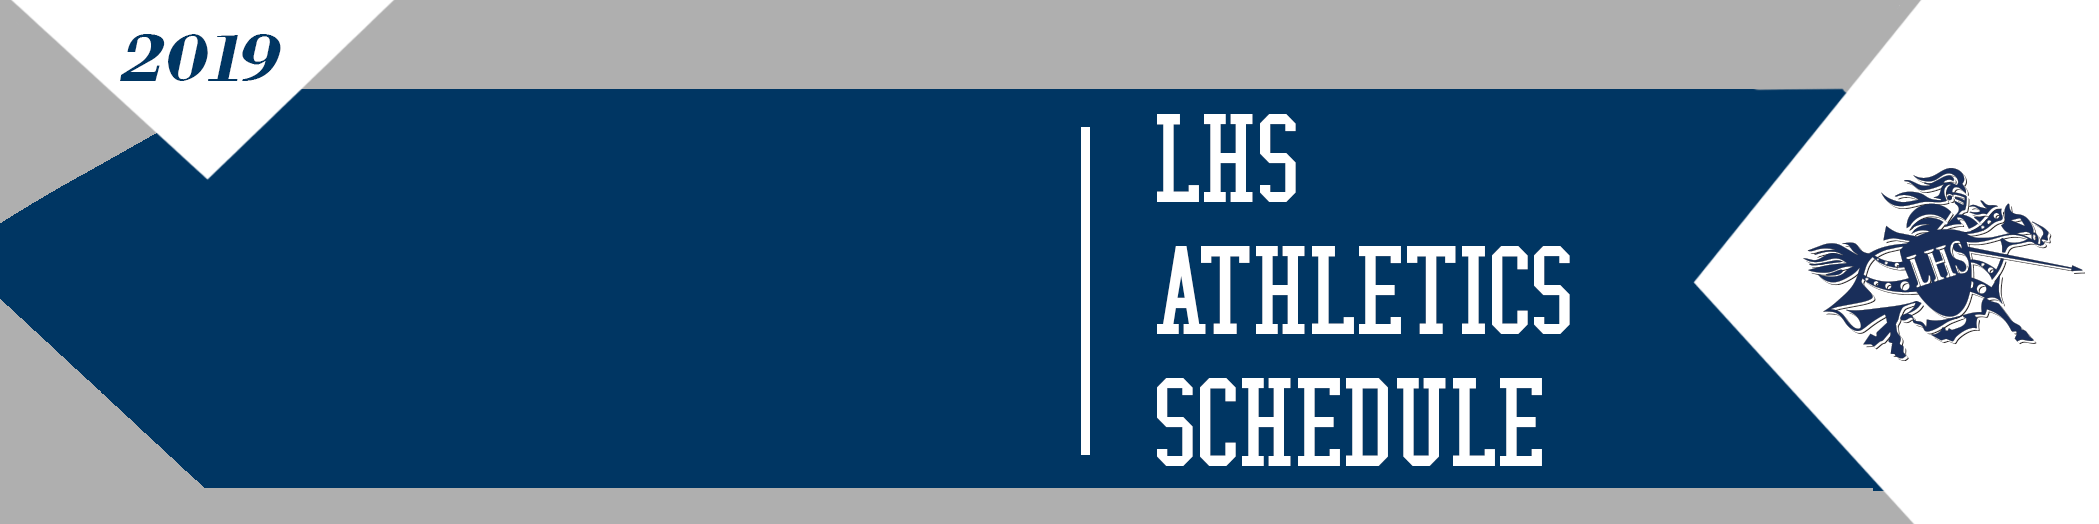 LHS Athletics Schedule with Lancer logo